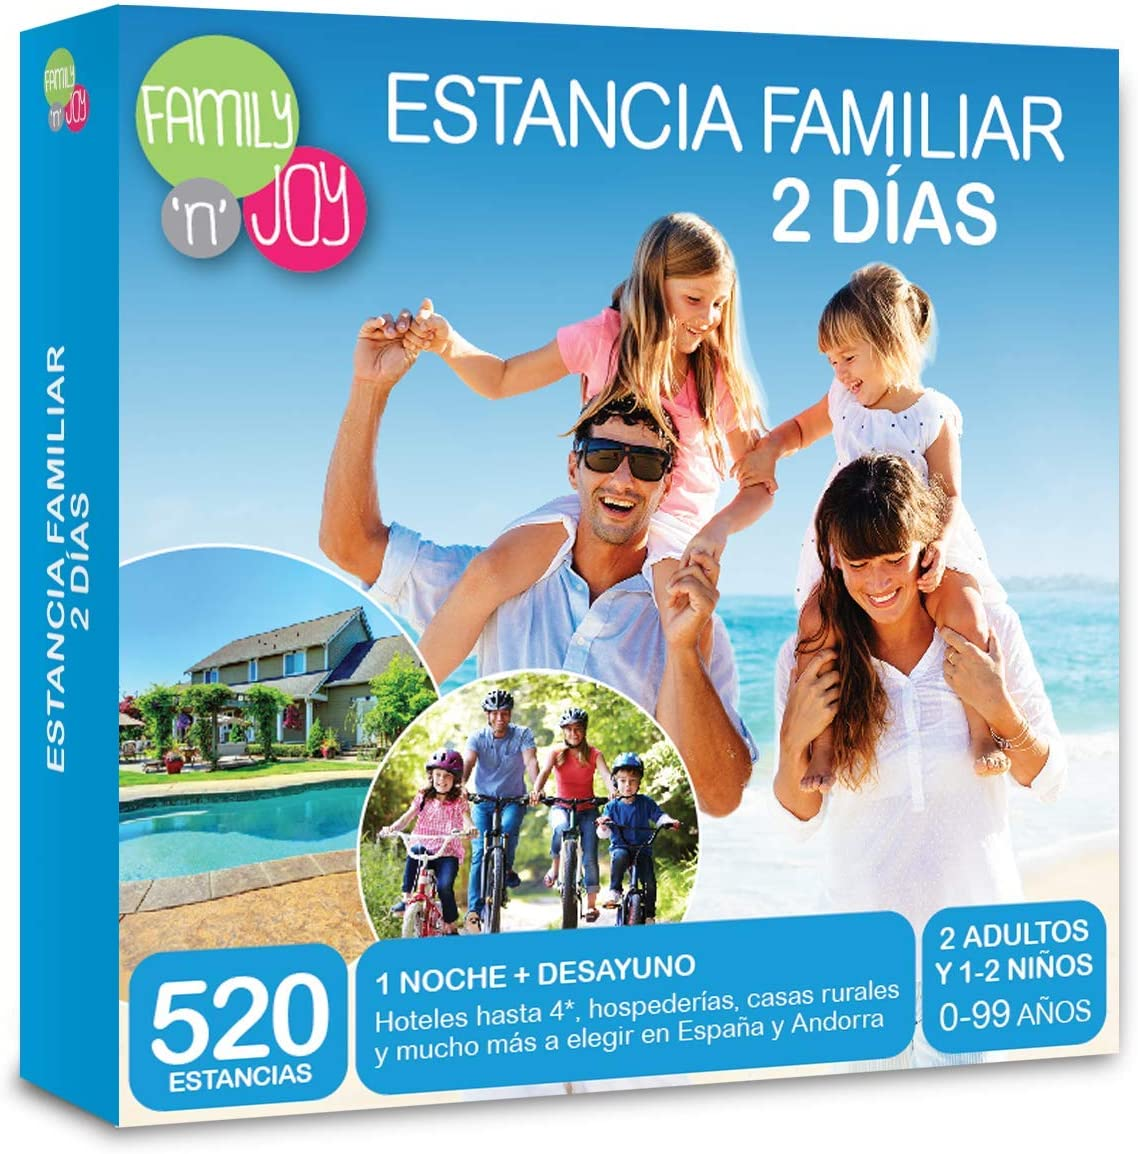 family n joy estancia familiar 2 dias